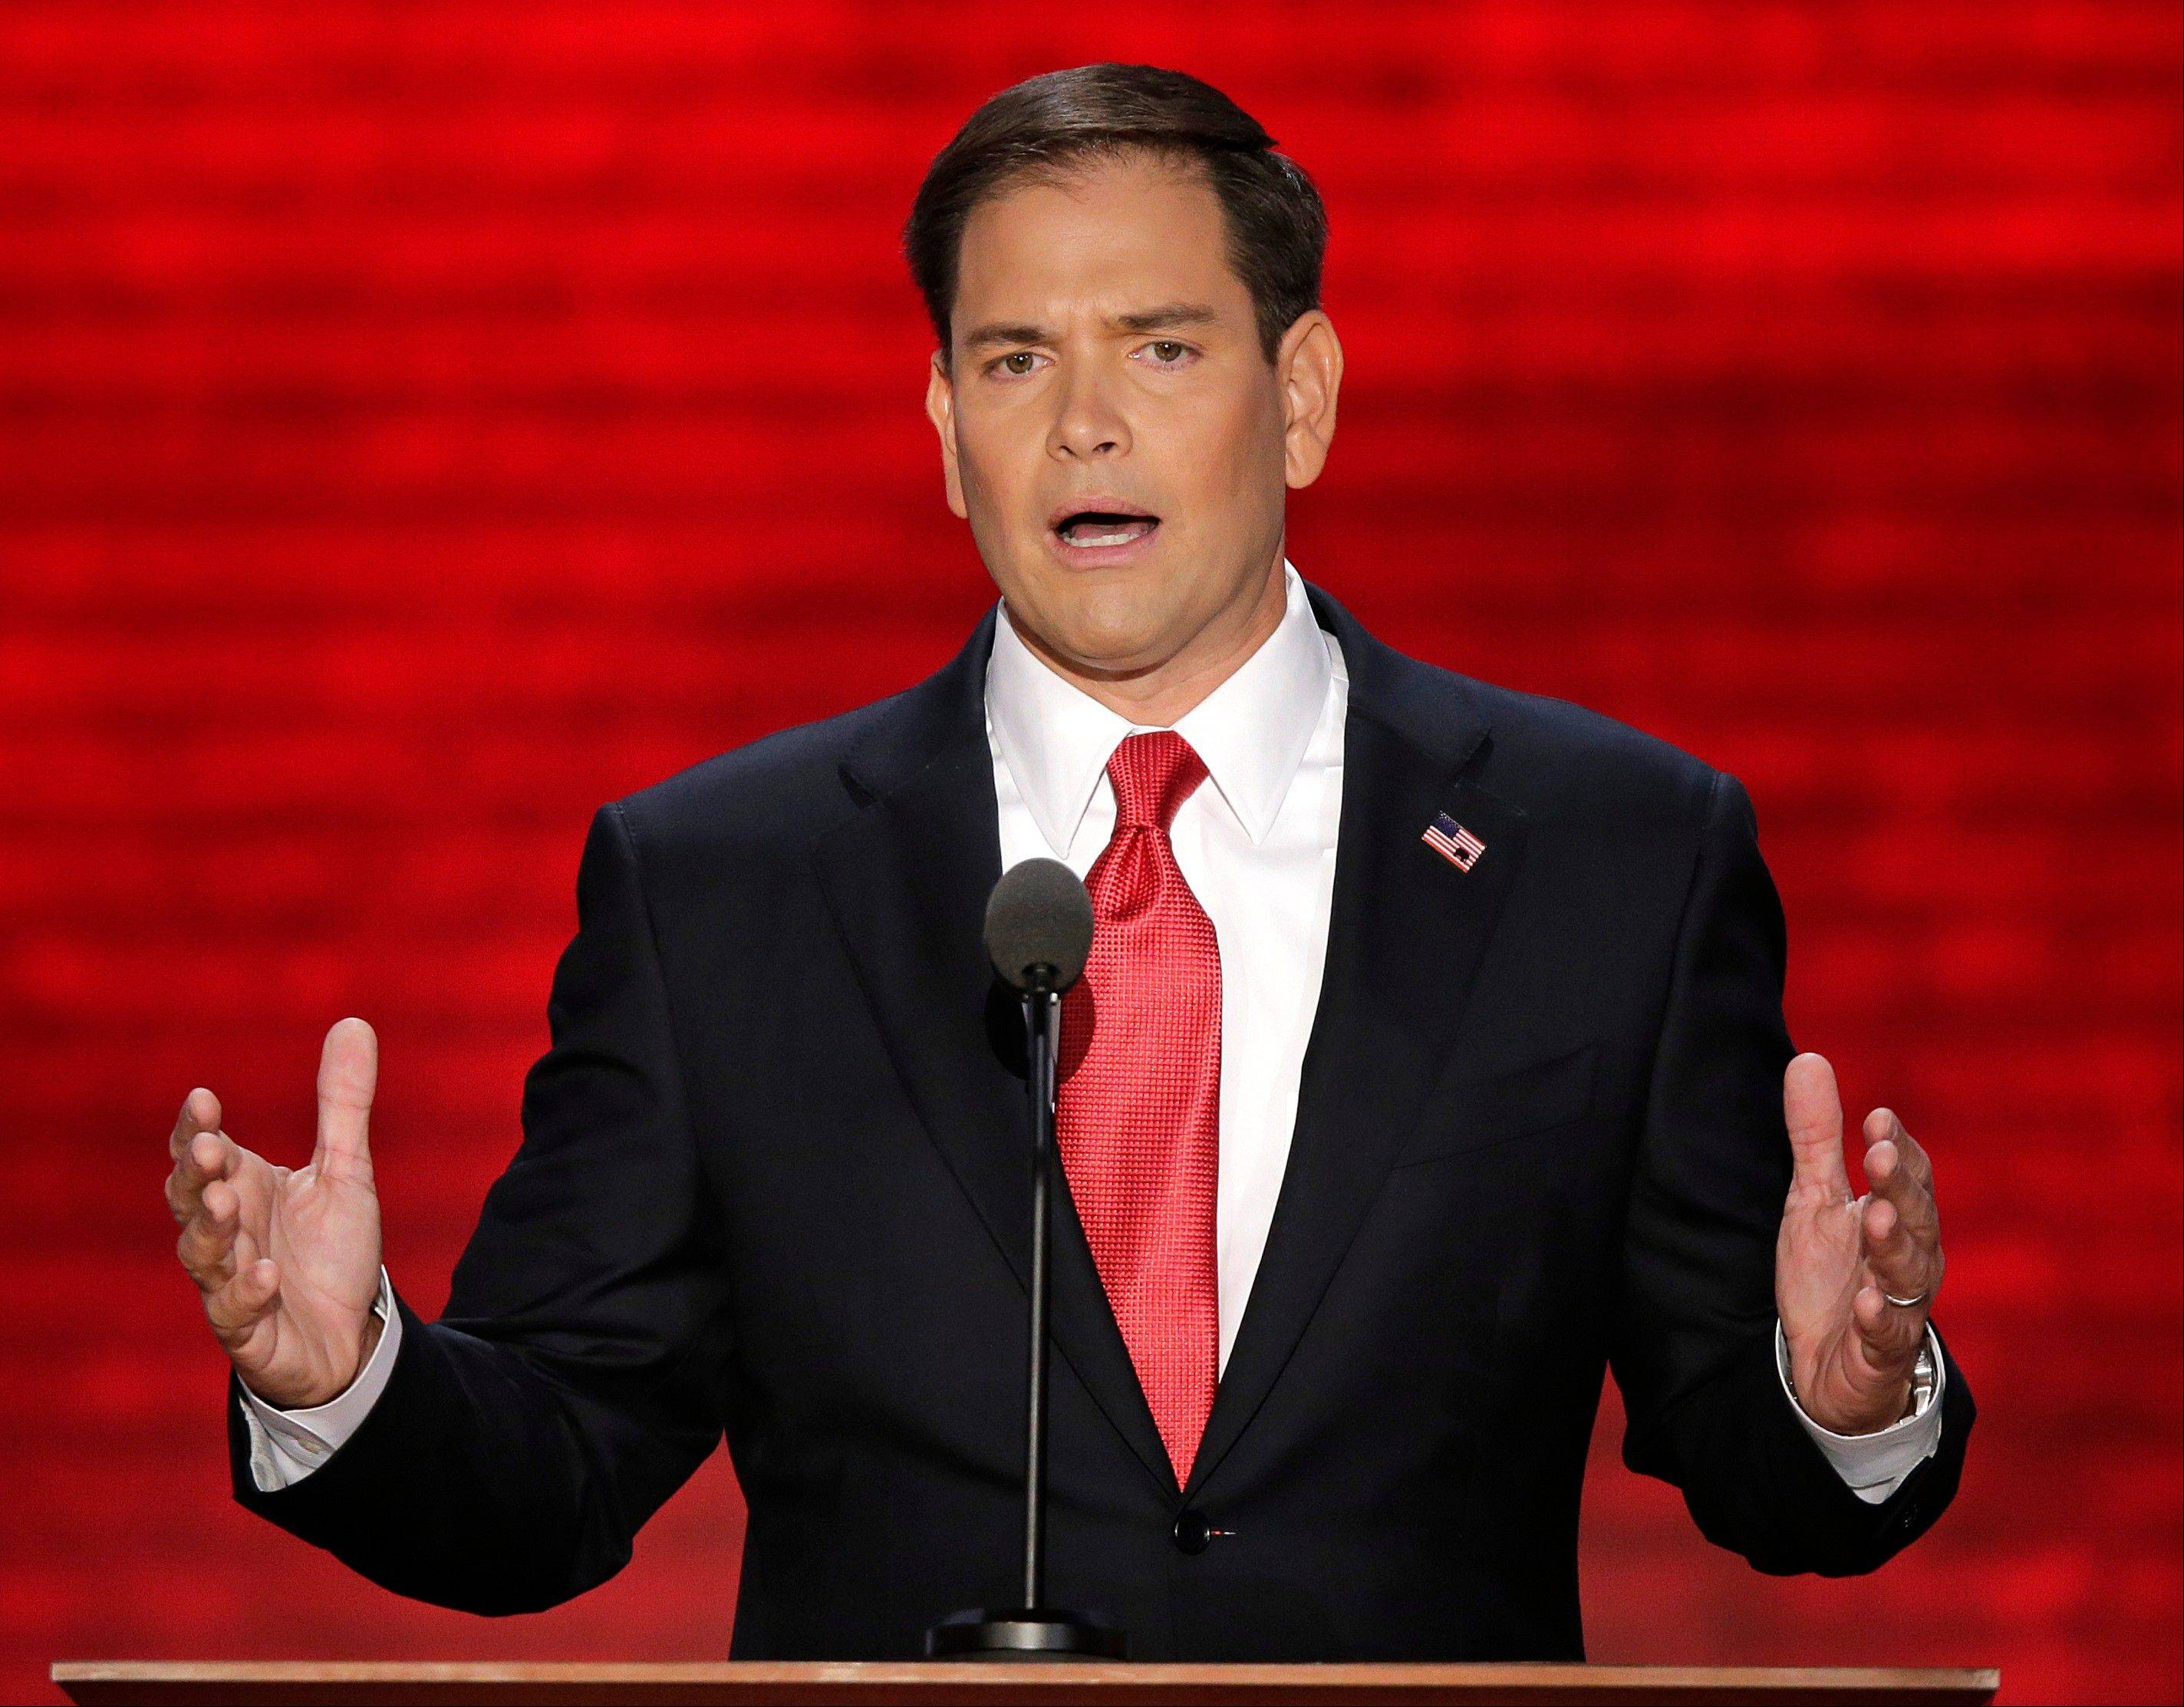 Florida Sen. Marco Rubio addresses the Republican National Convention in Tampa, Fla.